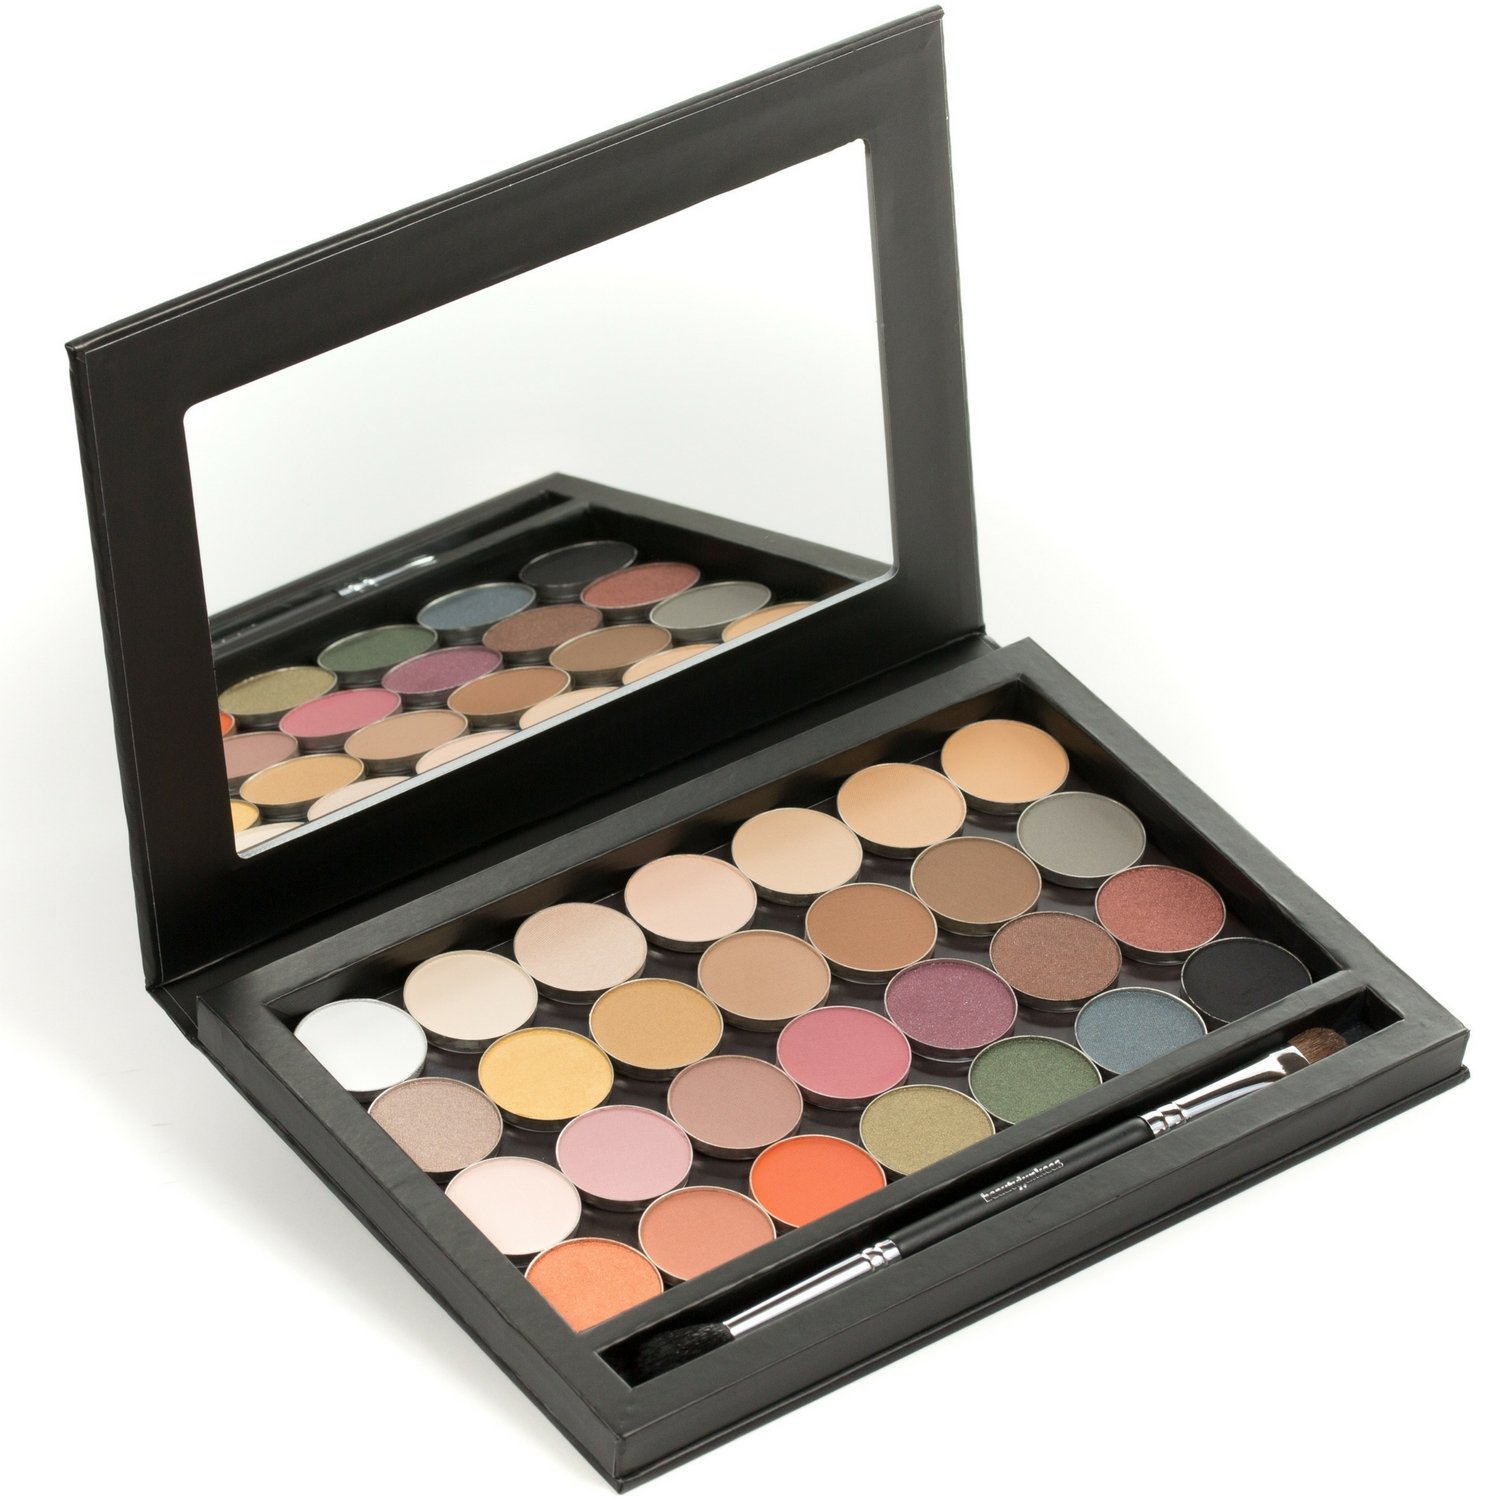 LIMITED EDITION 28 PC Eyeshadow Collection: 28 Single Eye Shadow Pans with a Magnetic Makeup Palette + Bonus Duo End Makeup Brush, Paraben Free, Gluten Free, Made in the USA